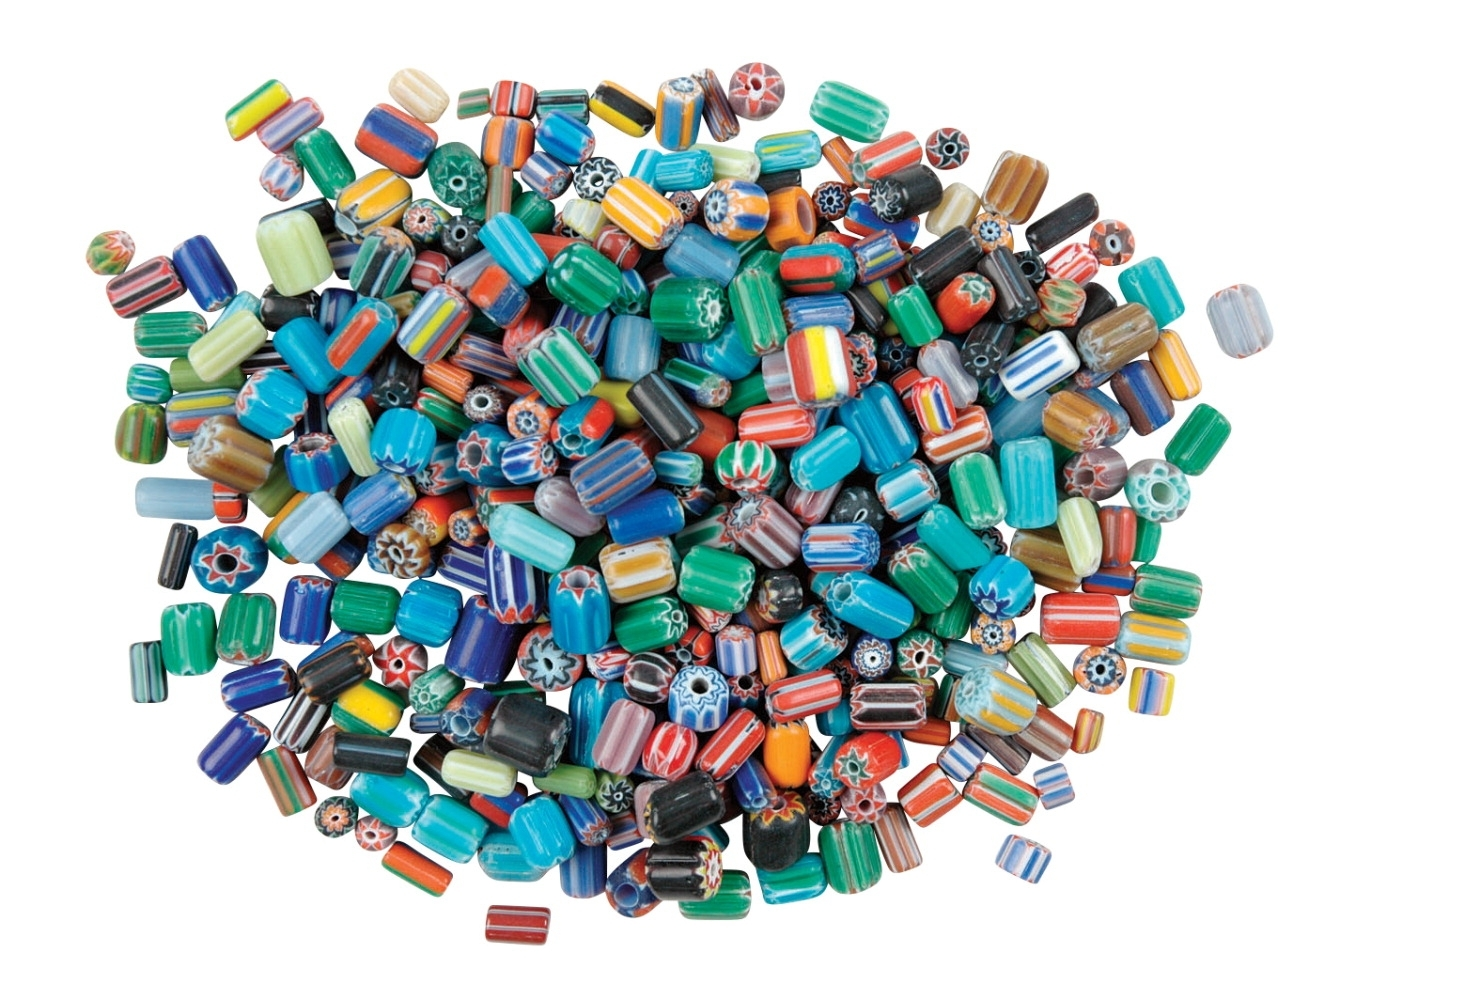 Learning: Supplies Art & Craft Supplies Beads & Beading Supplies - 408056 - School Specialty Glass Assorted Shape Bead; 5-8 Mm; Assorted Color; 0.5 Lb 408056